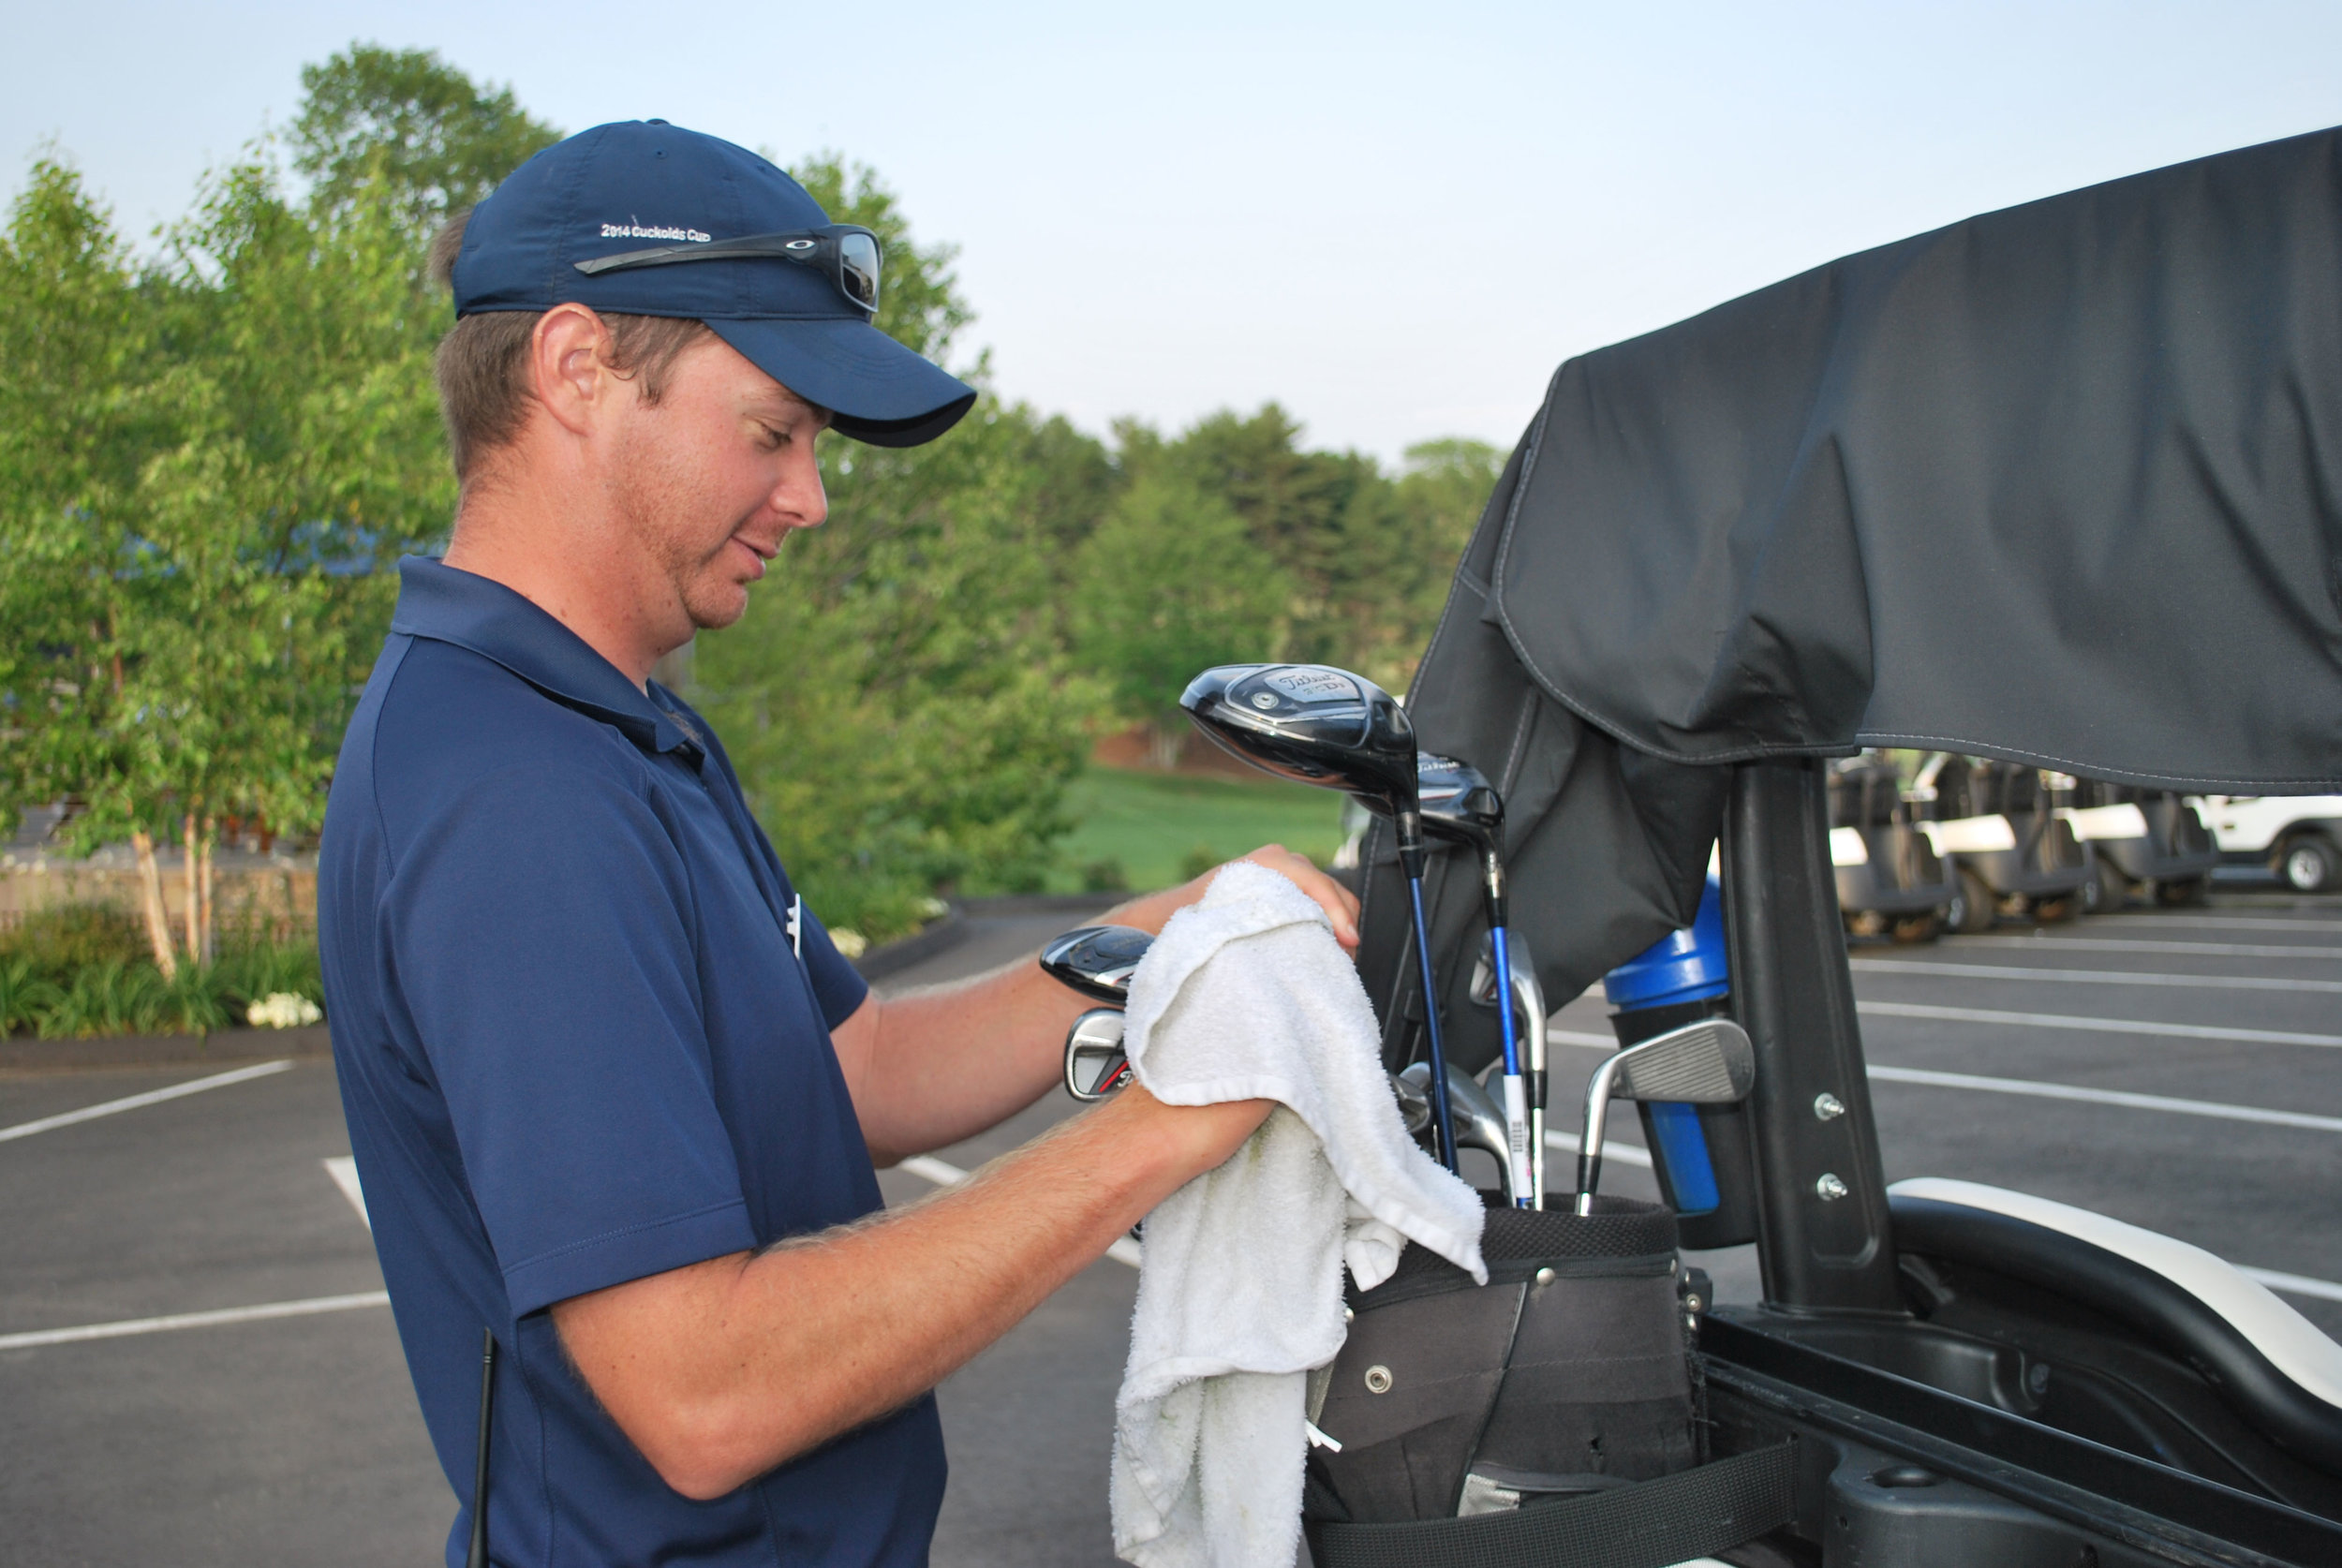 Our golf service staff is here to start your day with a smile and whatever else you may need before getting to the 1st tee and they are there when you finish to help clean up after the round.